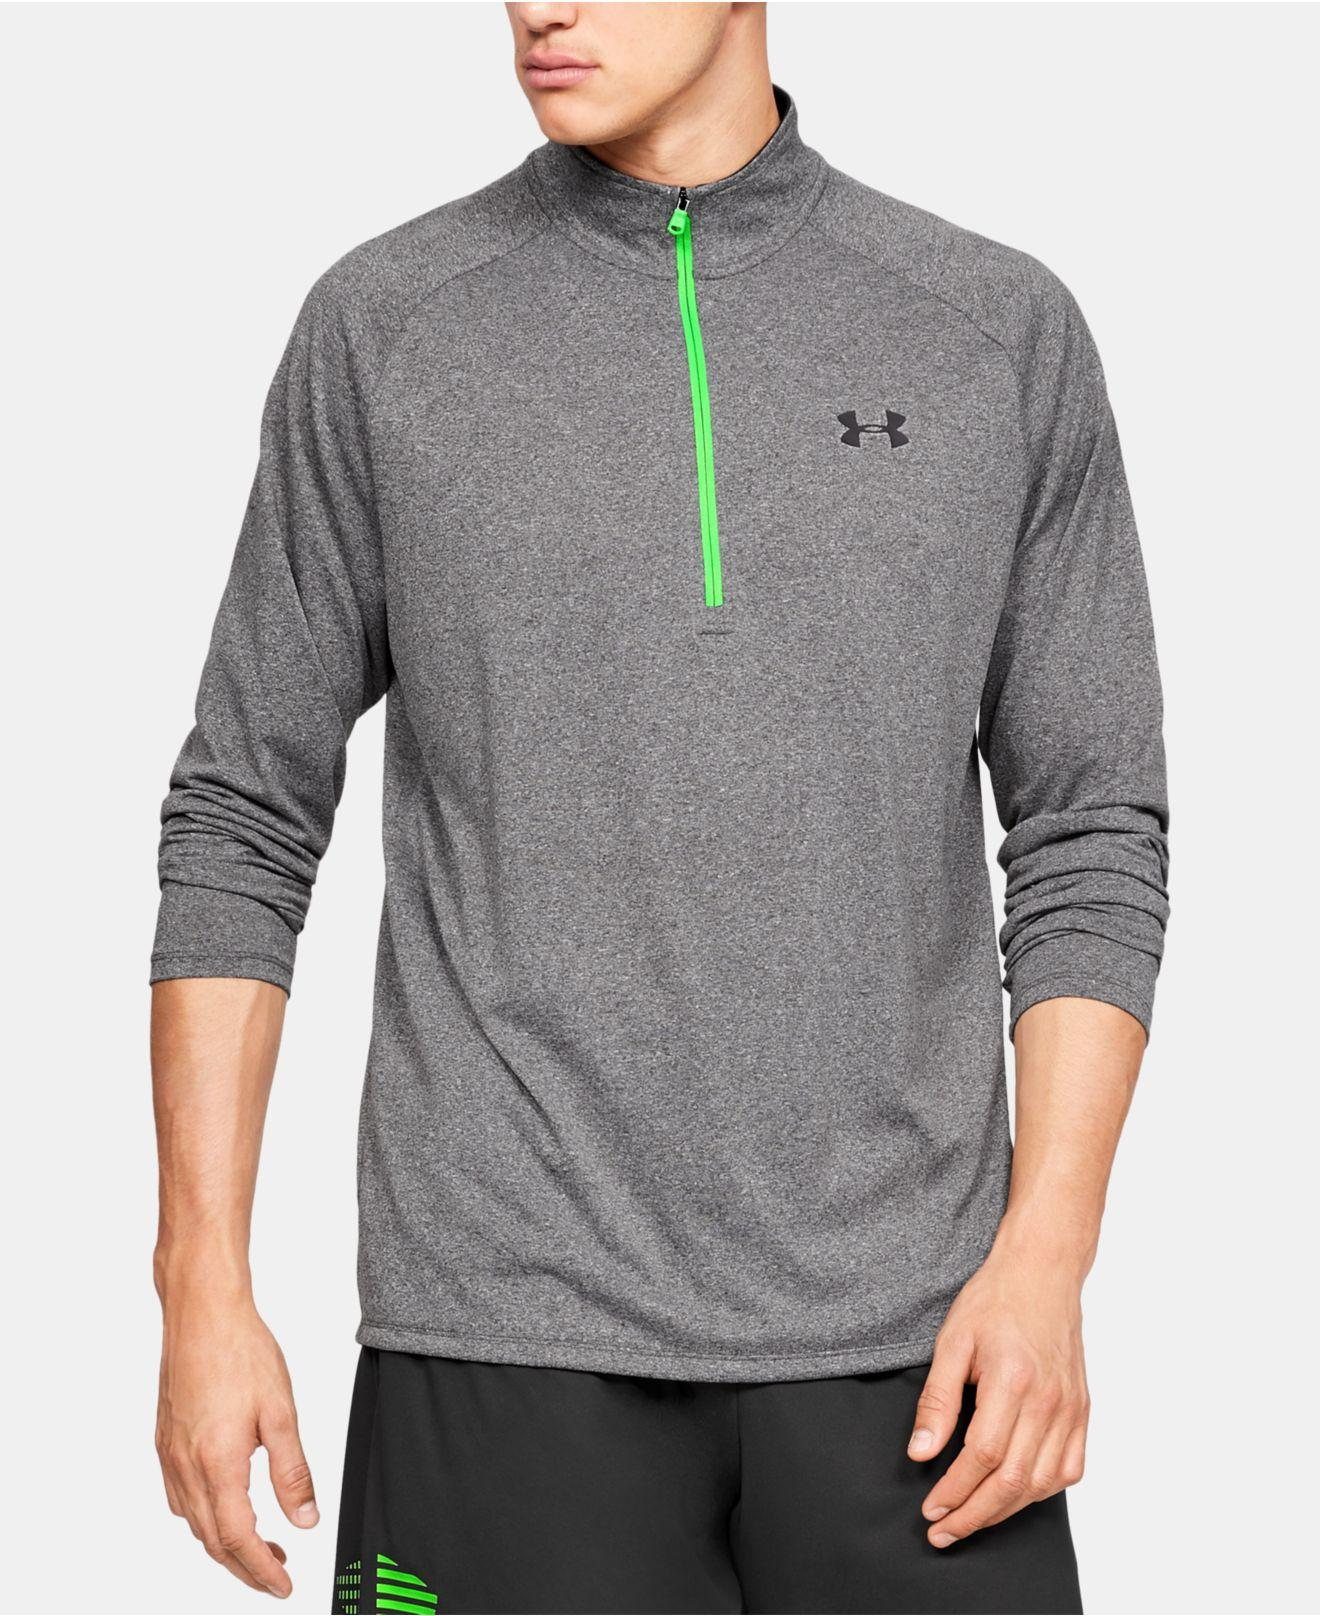 9ca11a66f1 Lyst - Under Armour Ua Tech Half-zip Pullover in Gray for Men